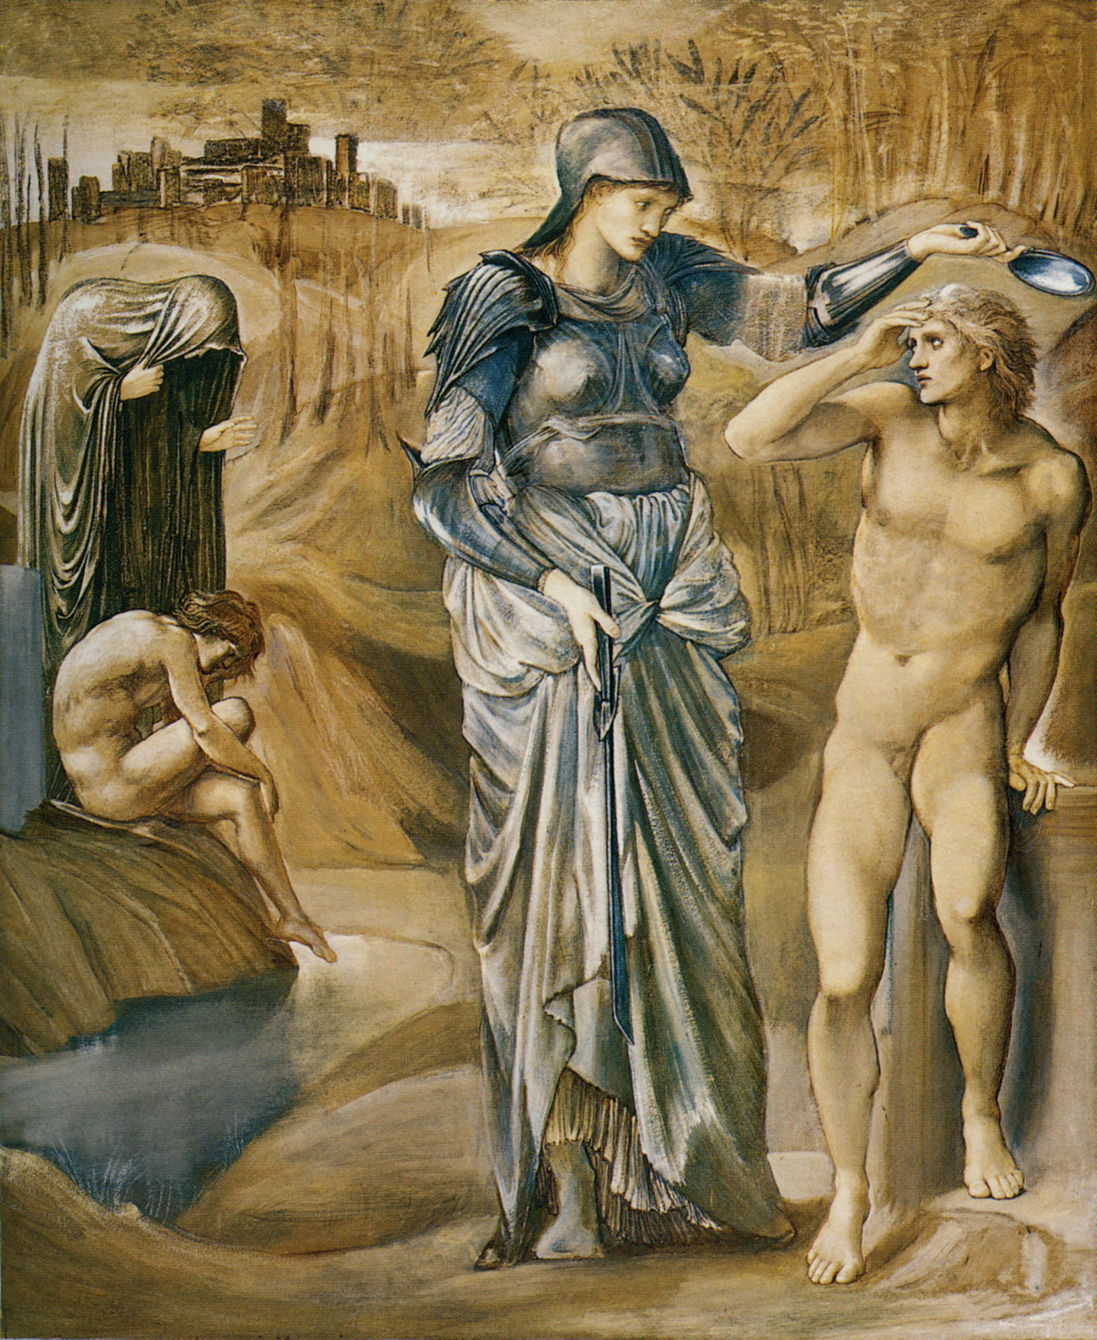 burne jones Cycle Persee 1 1877 L'appel de persee Southampton City Art Gallery